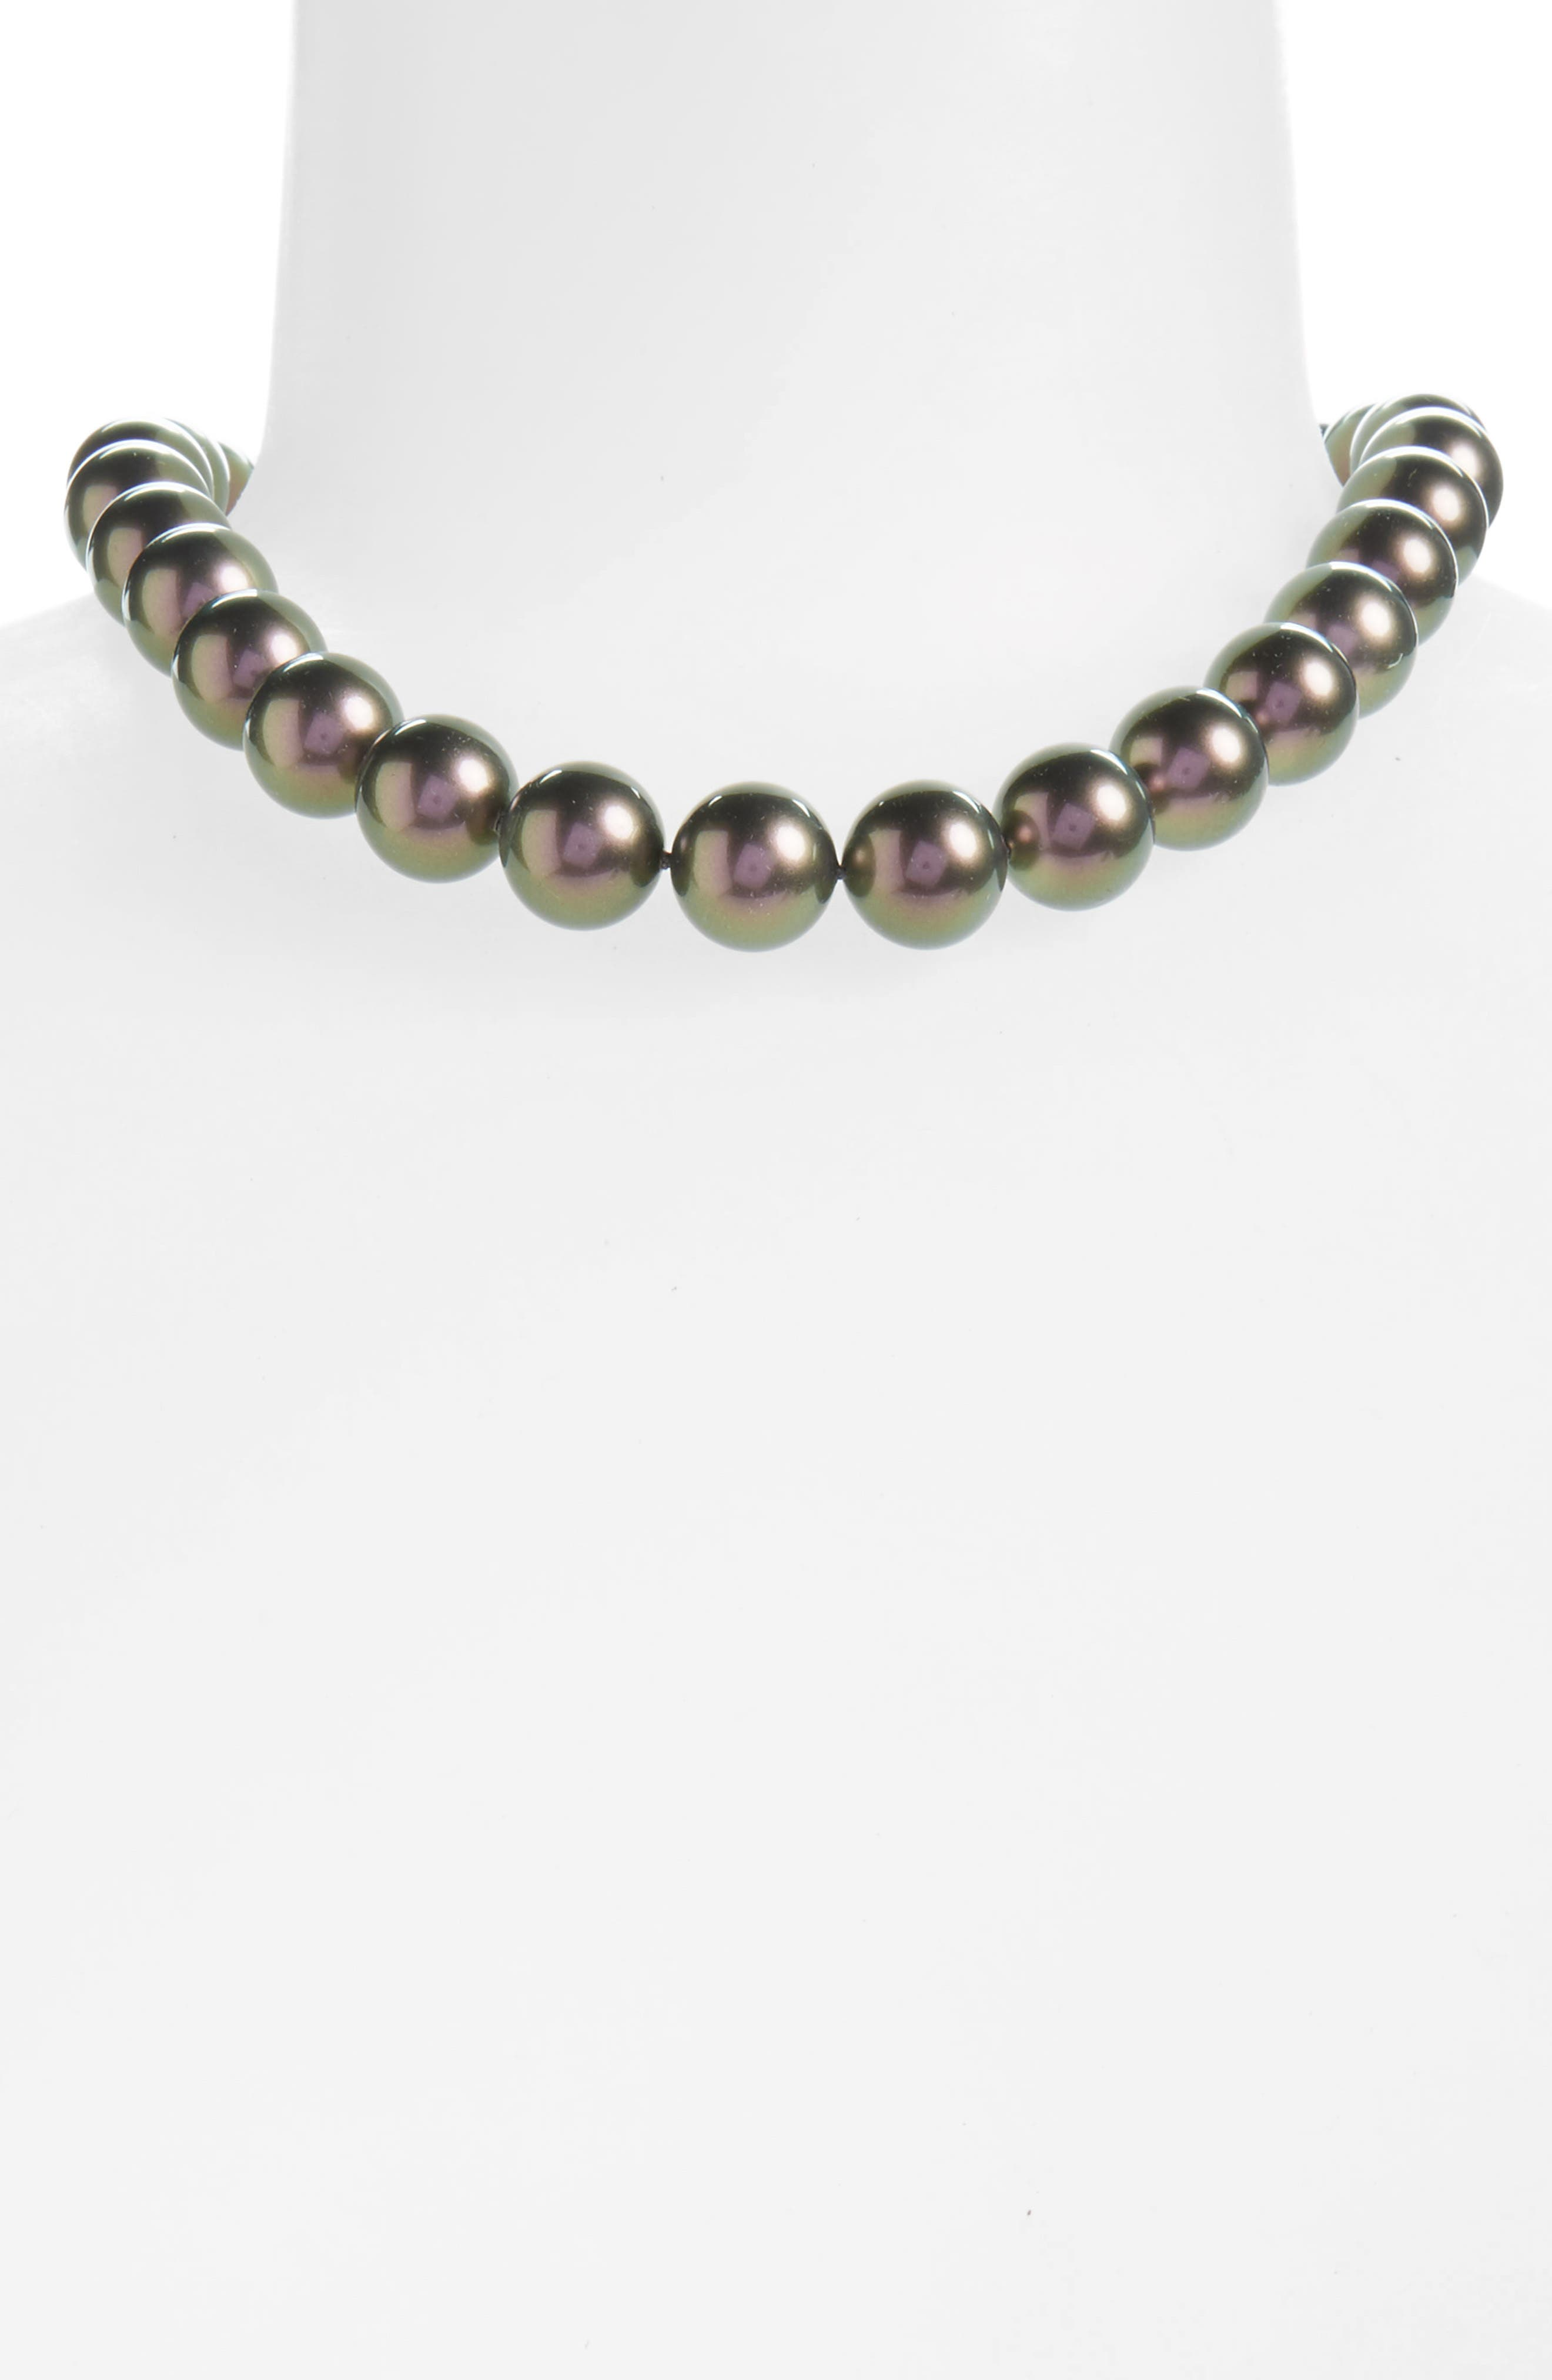 14mm Simulated Pearl Strand Necklace,                             Alternate thumbnail 2, color,                             020